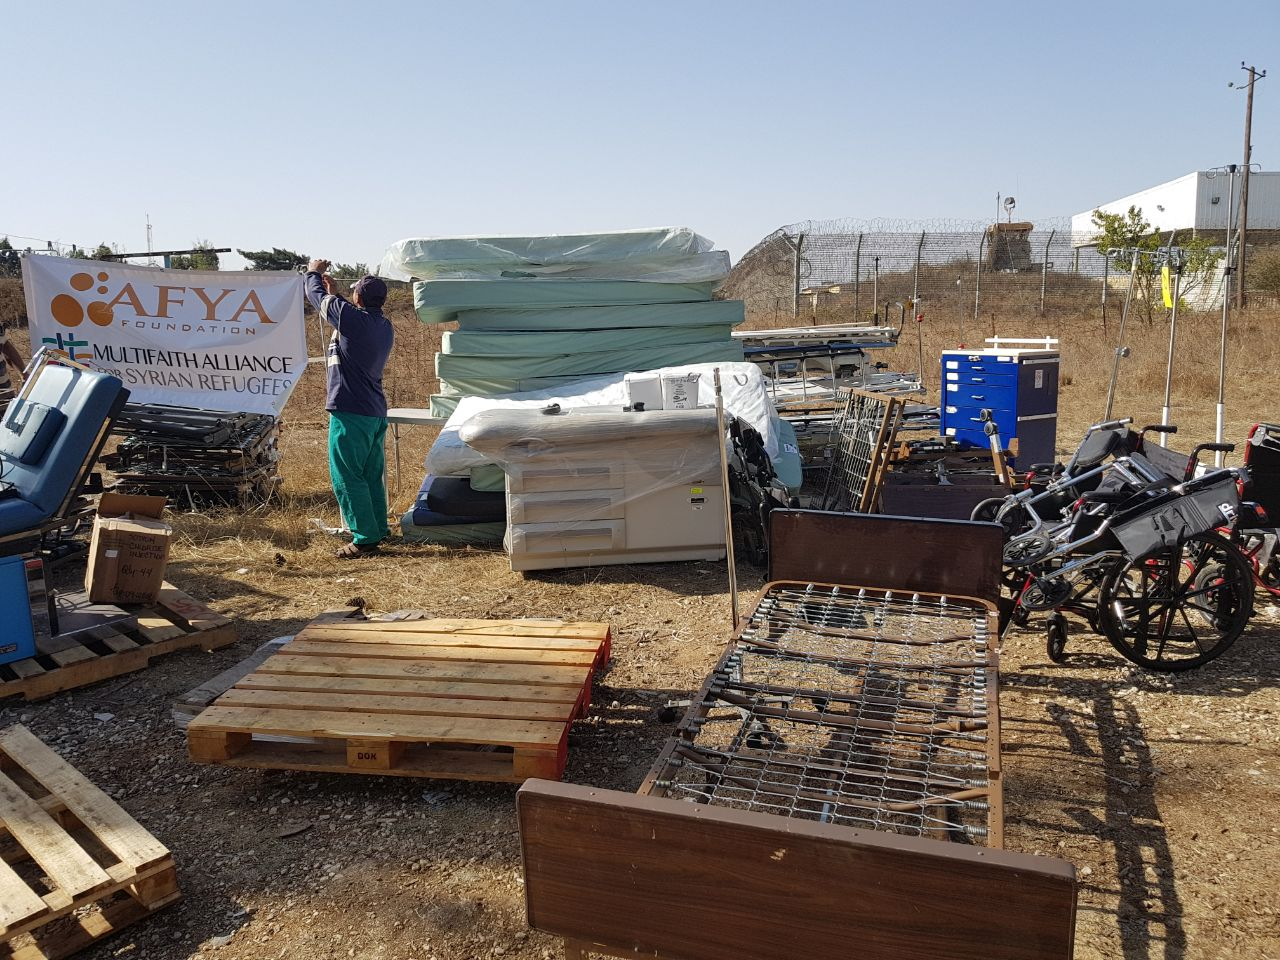 Afya Foundation Container Arrives